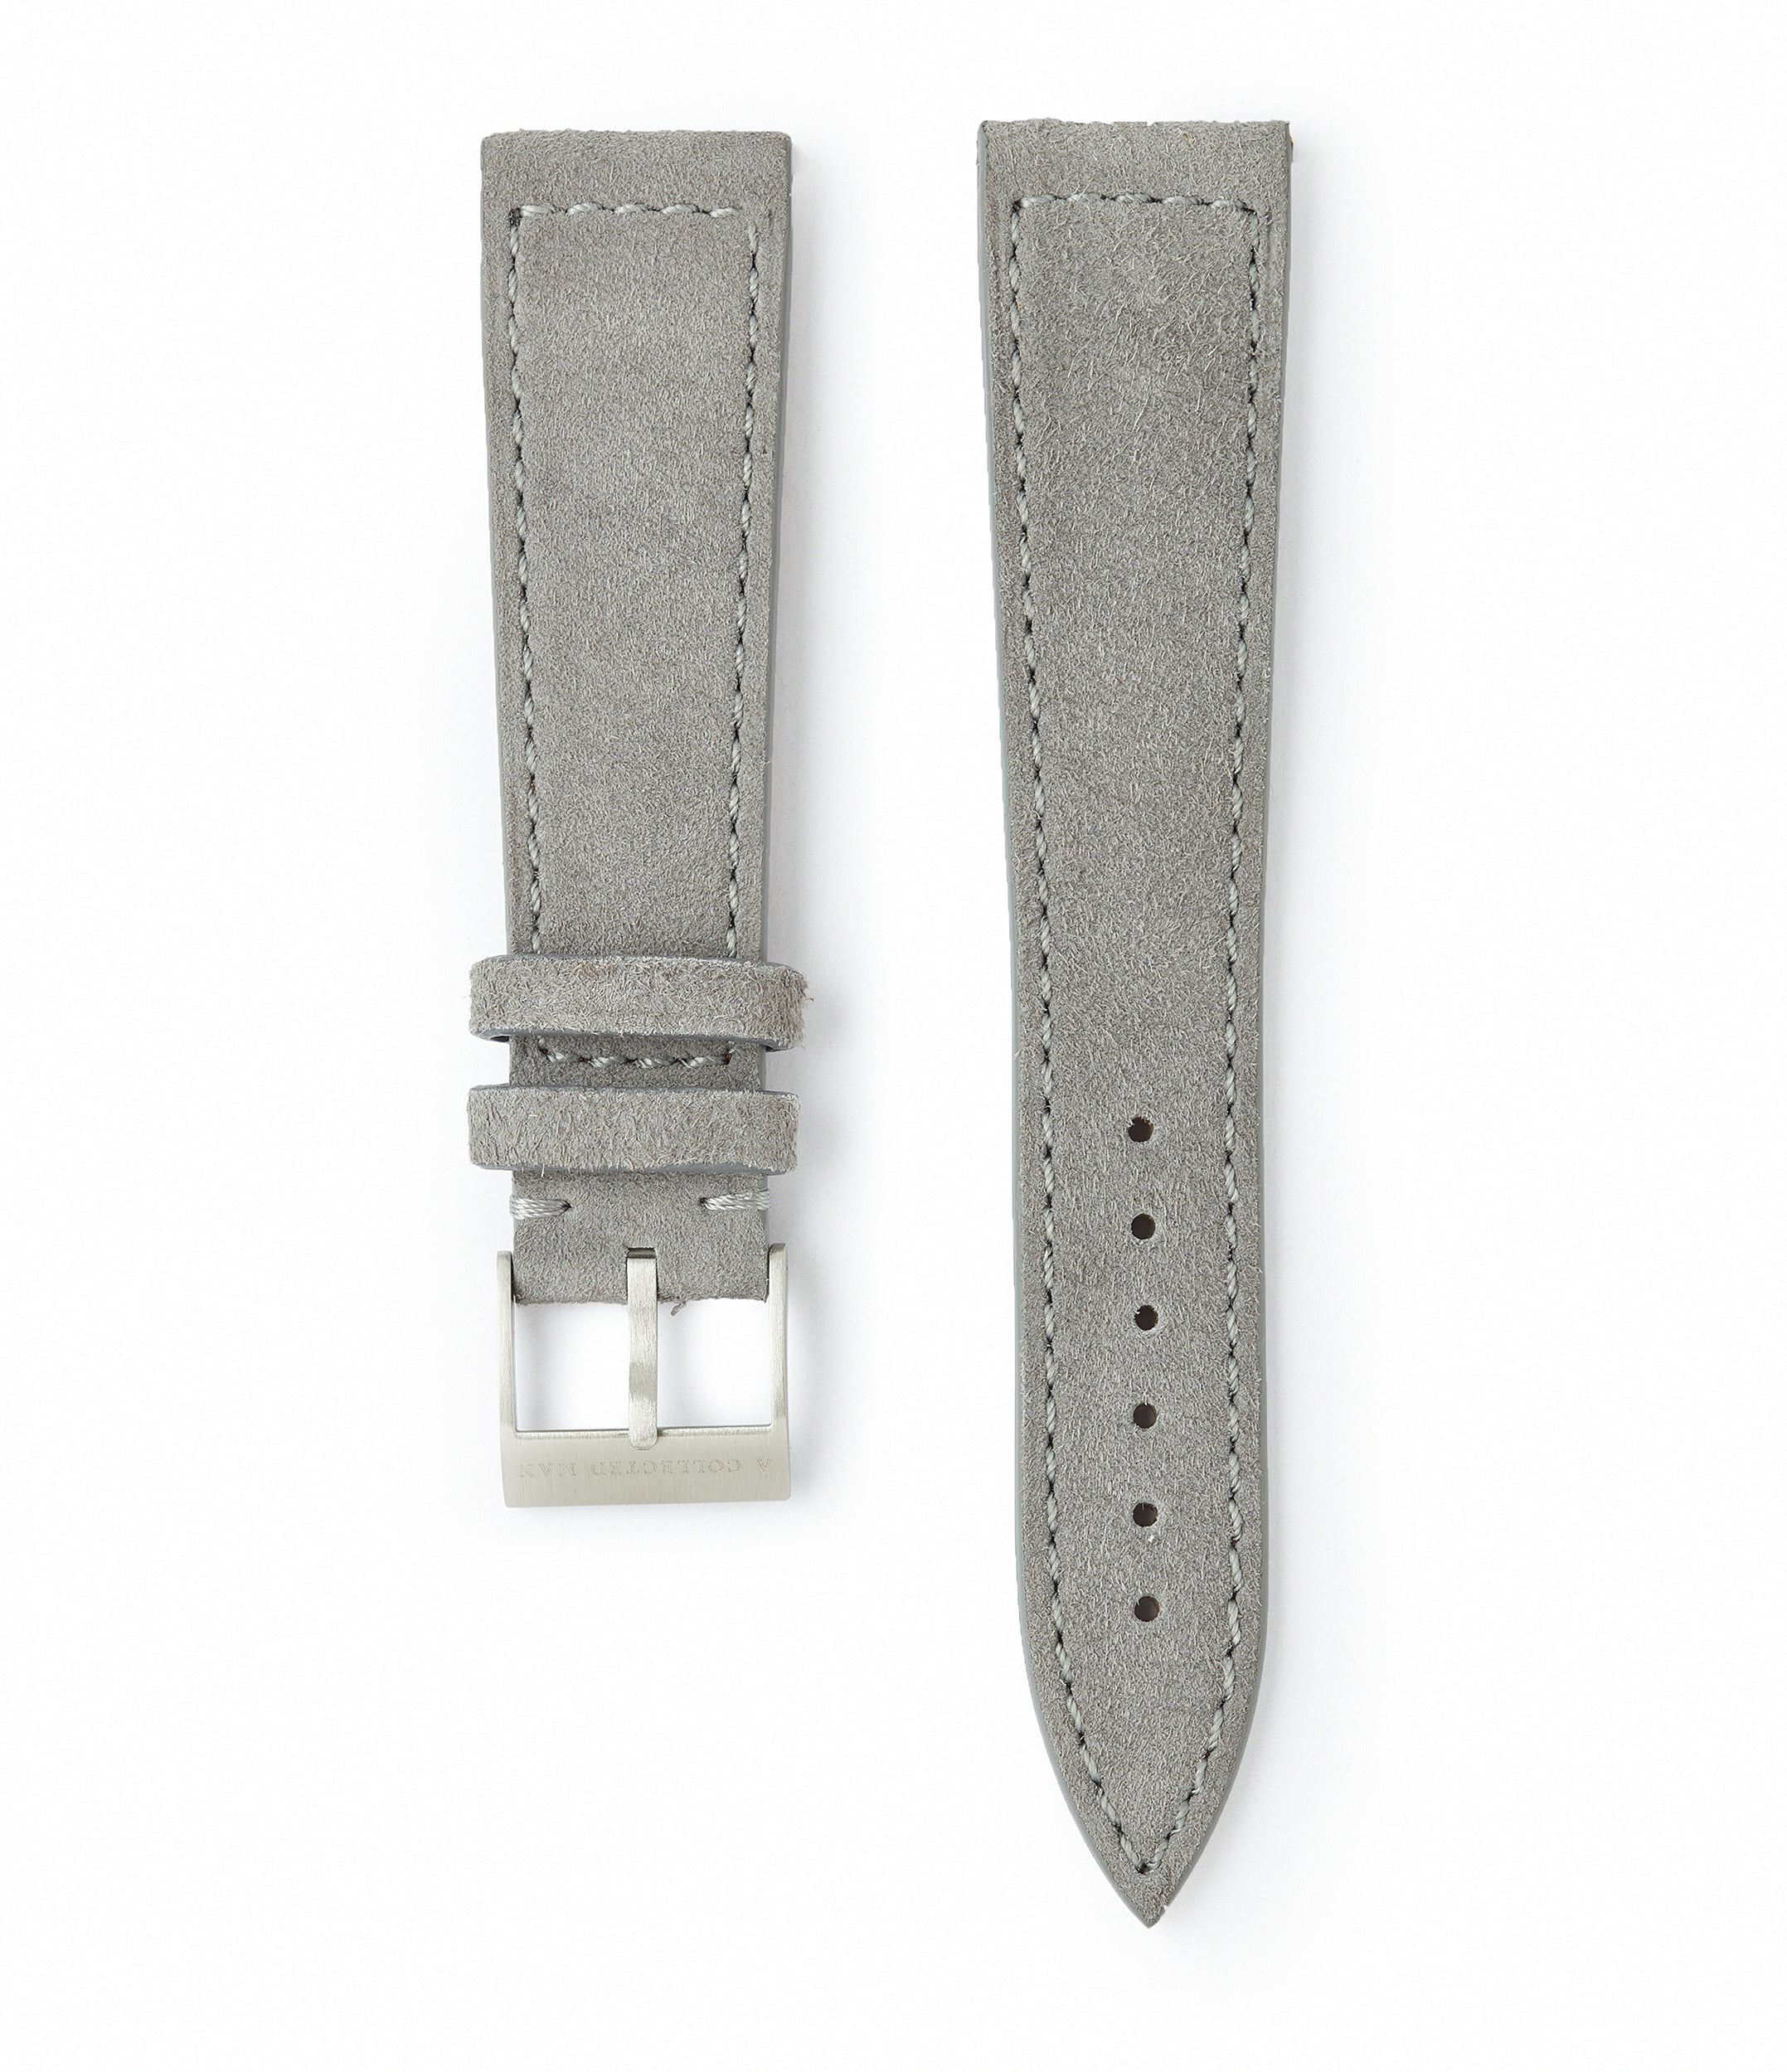 light grey suede boxed stitched Oslo watch strap 19mm lug width order online at A Collected Man London